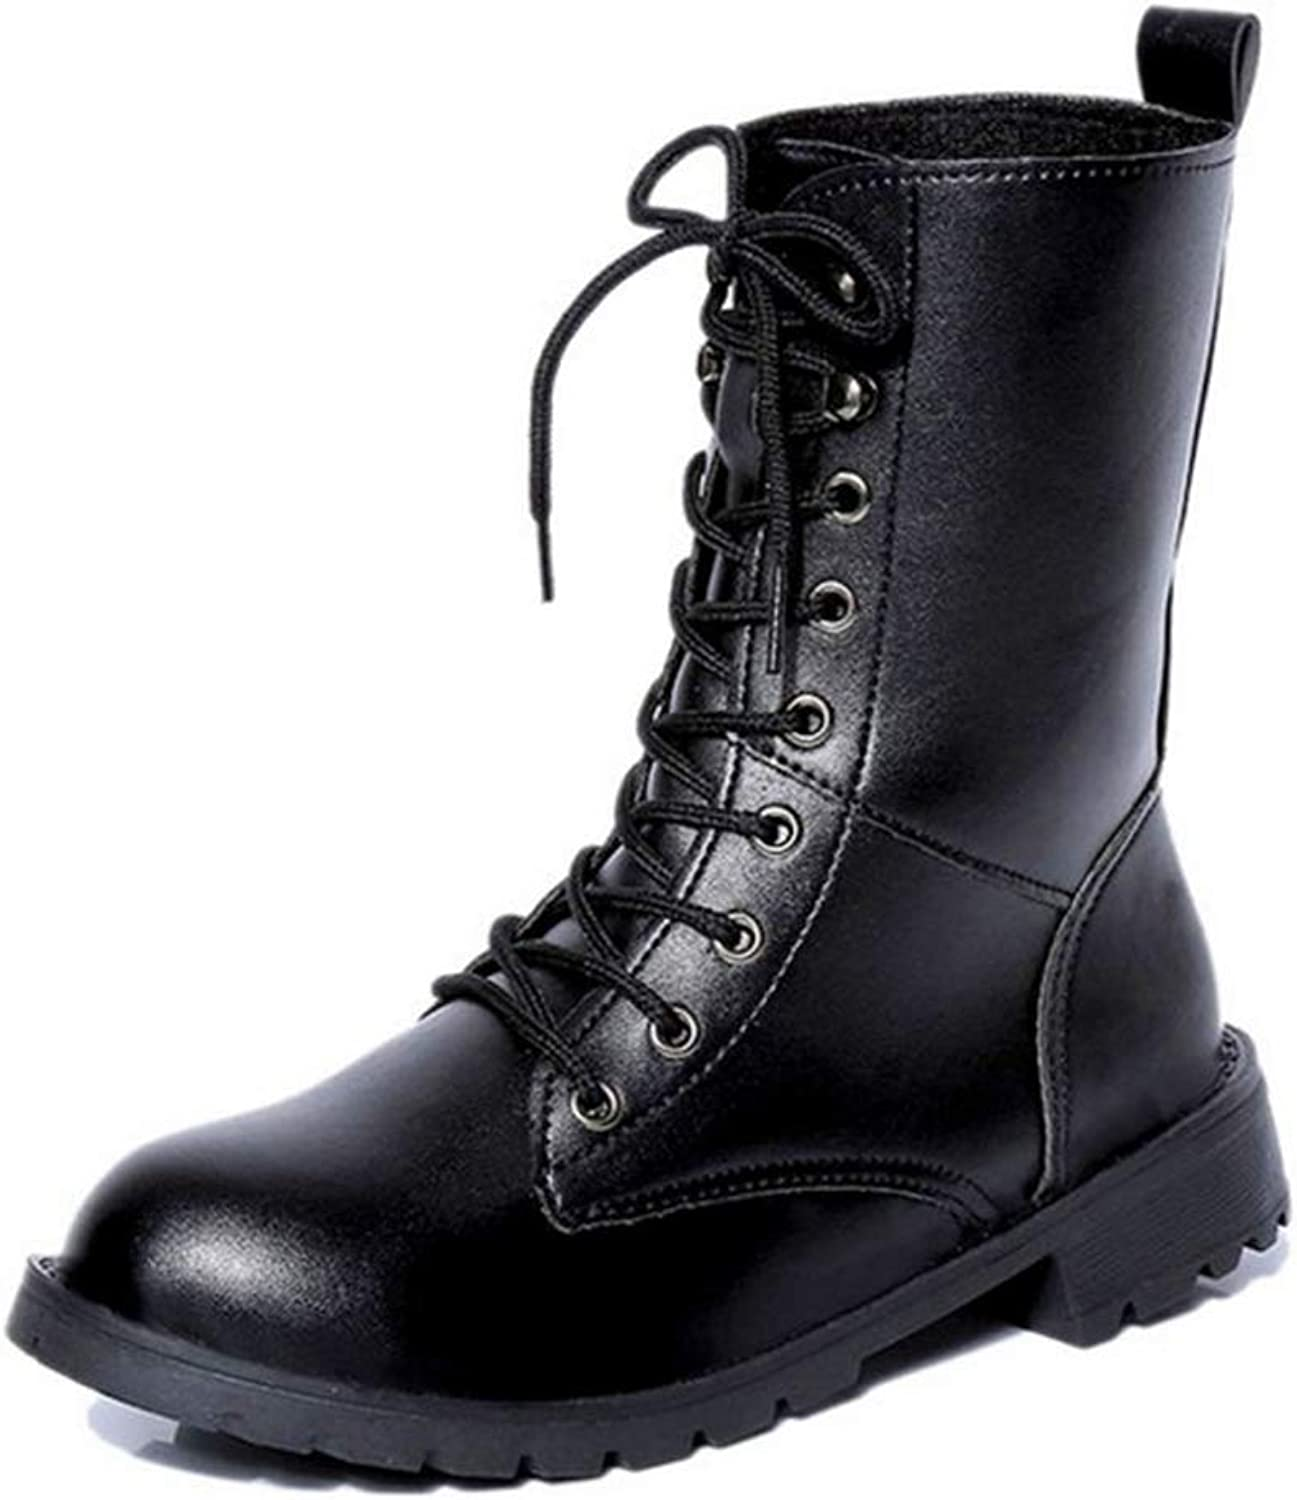 ASO-SLING Women's Mid Calf Winter Snow Boots Round Toe Knee High Punk Military Combat Booties